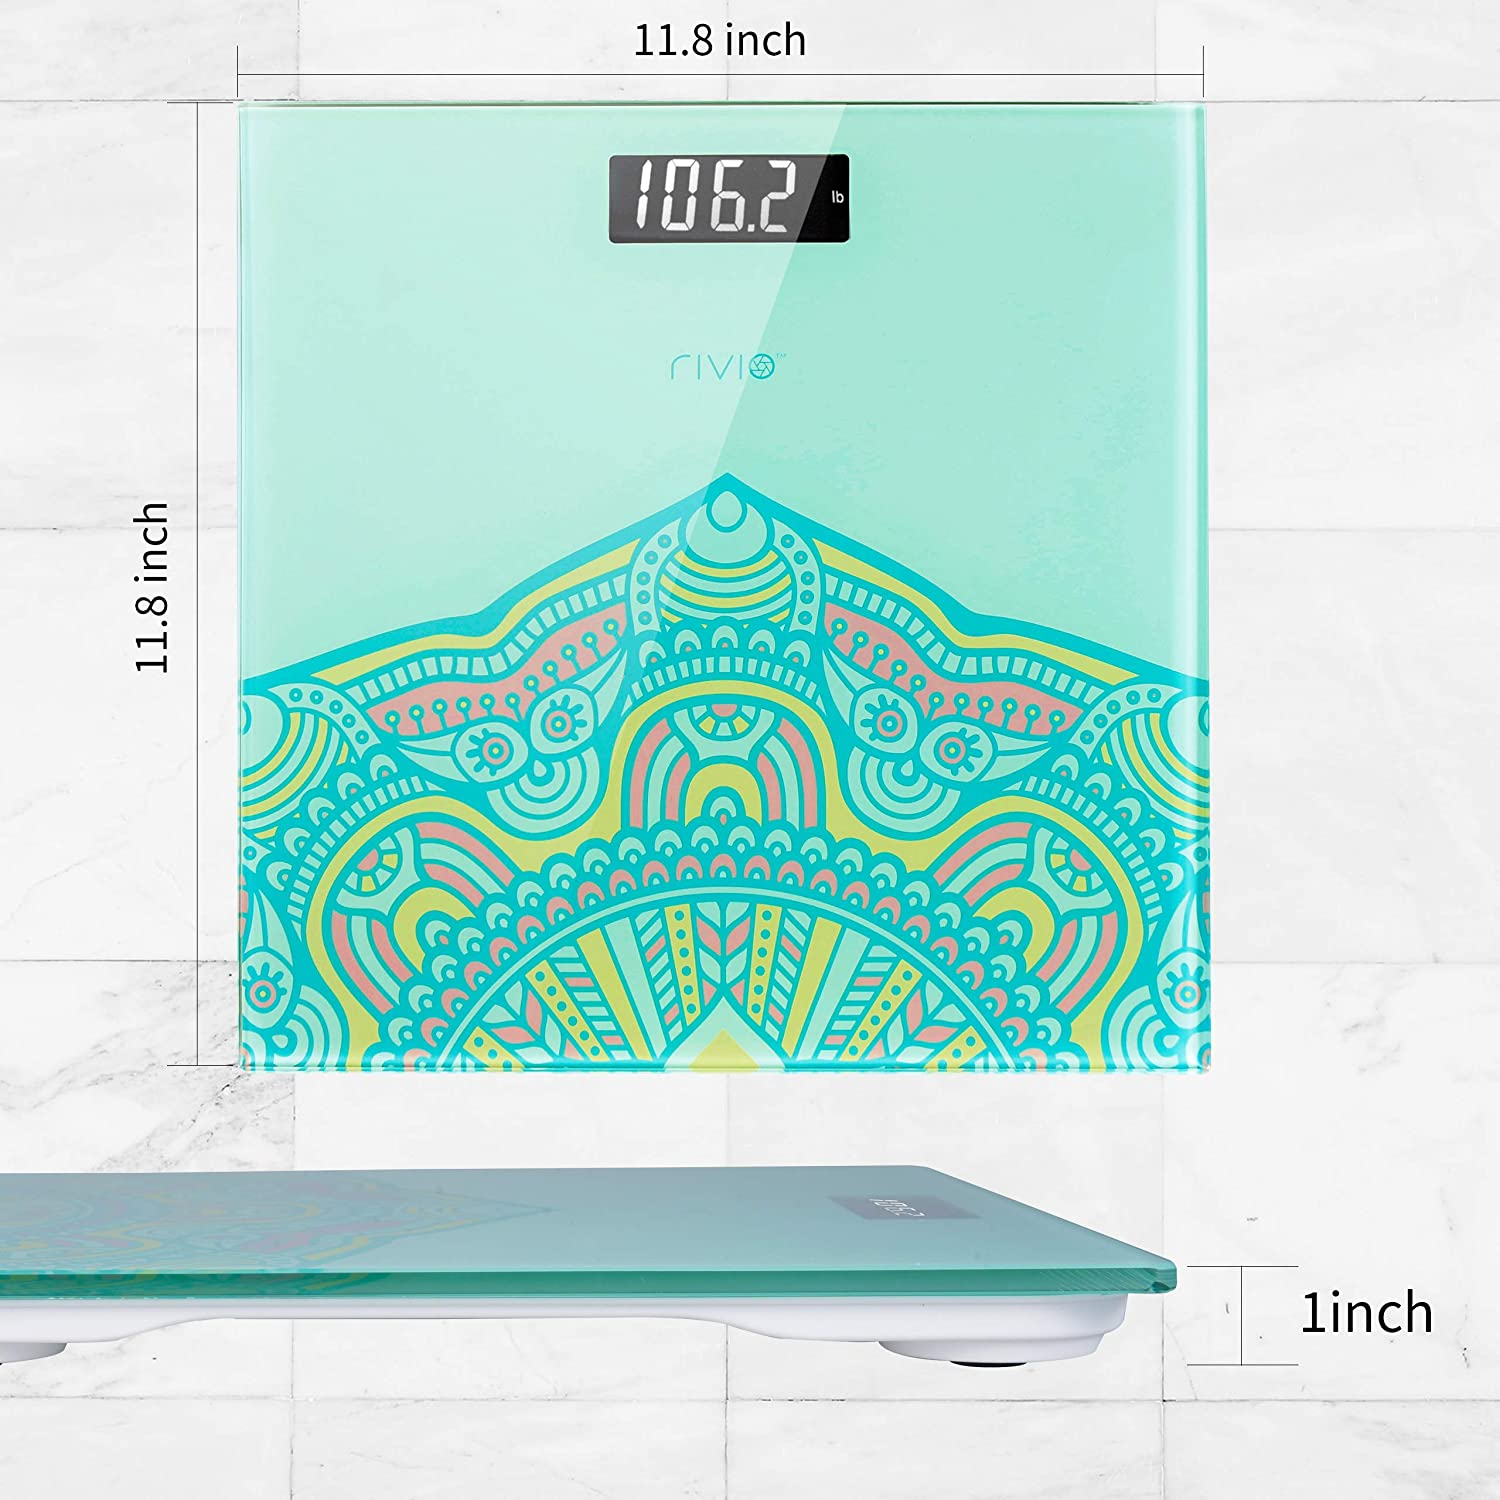 Pink RIVIO Bathroom Scale High Precision Digital Body Weight Scale with Large Backlit LCD Display 440Ib